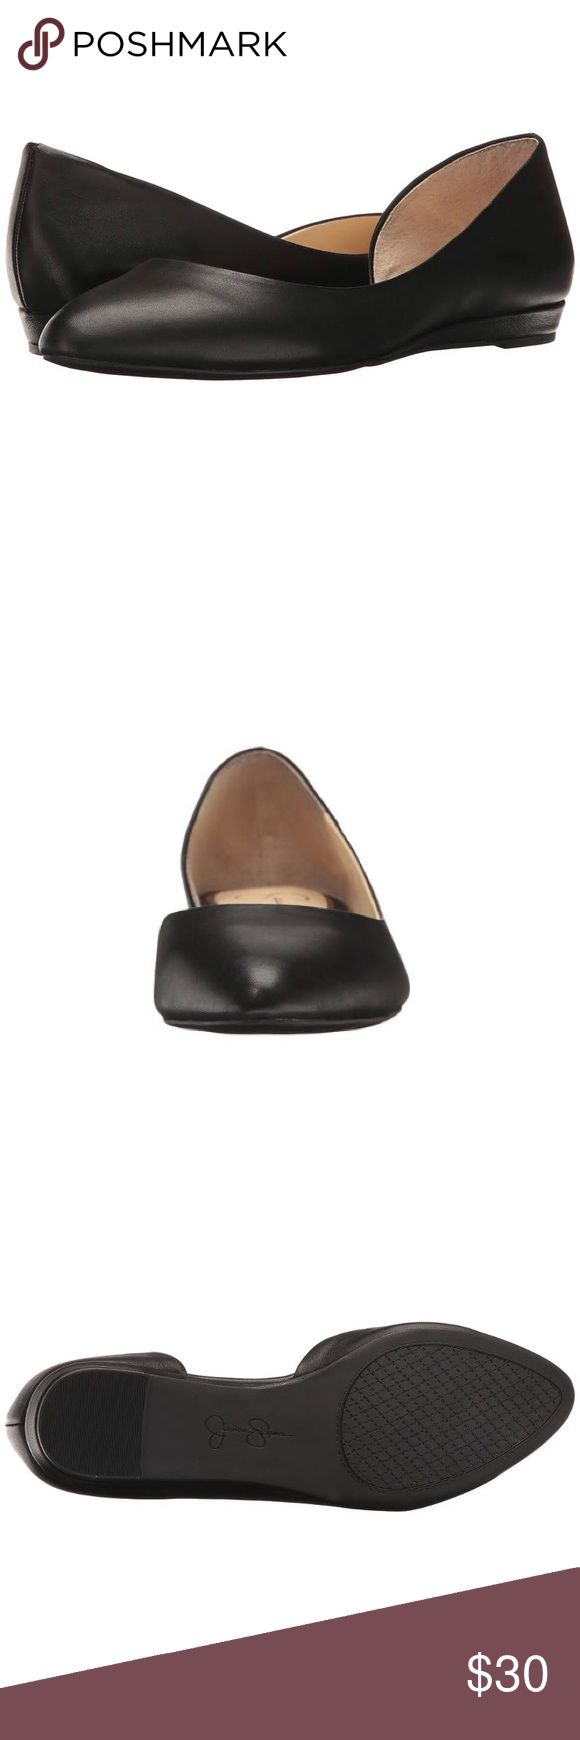 Jessica Simpson Women's Lynsey Ballet Flat Black Box included! An open side adds a flirty touch to an almond-toe flat lifted by a slight wedge. Leather upper. Slip-on wear. Man-made lining. Cushioned man-made footbed. Man-made sole. Micro-wedge heel. Jessica Simpson Shoes Flats & Loafers